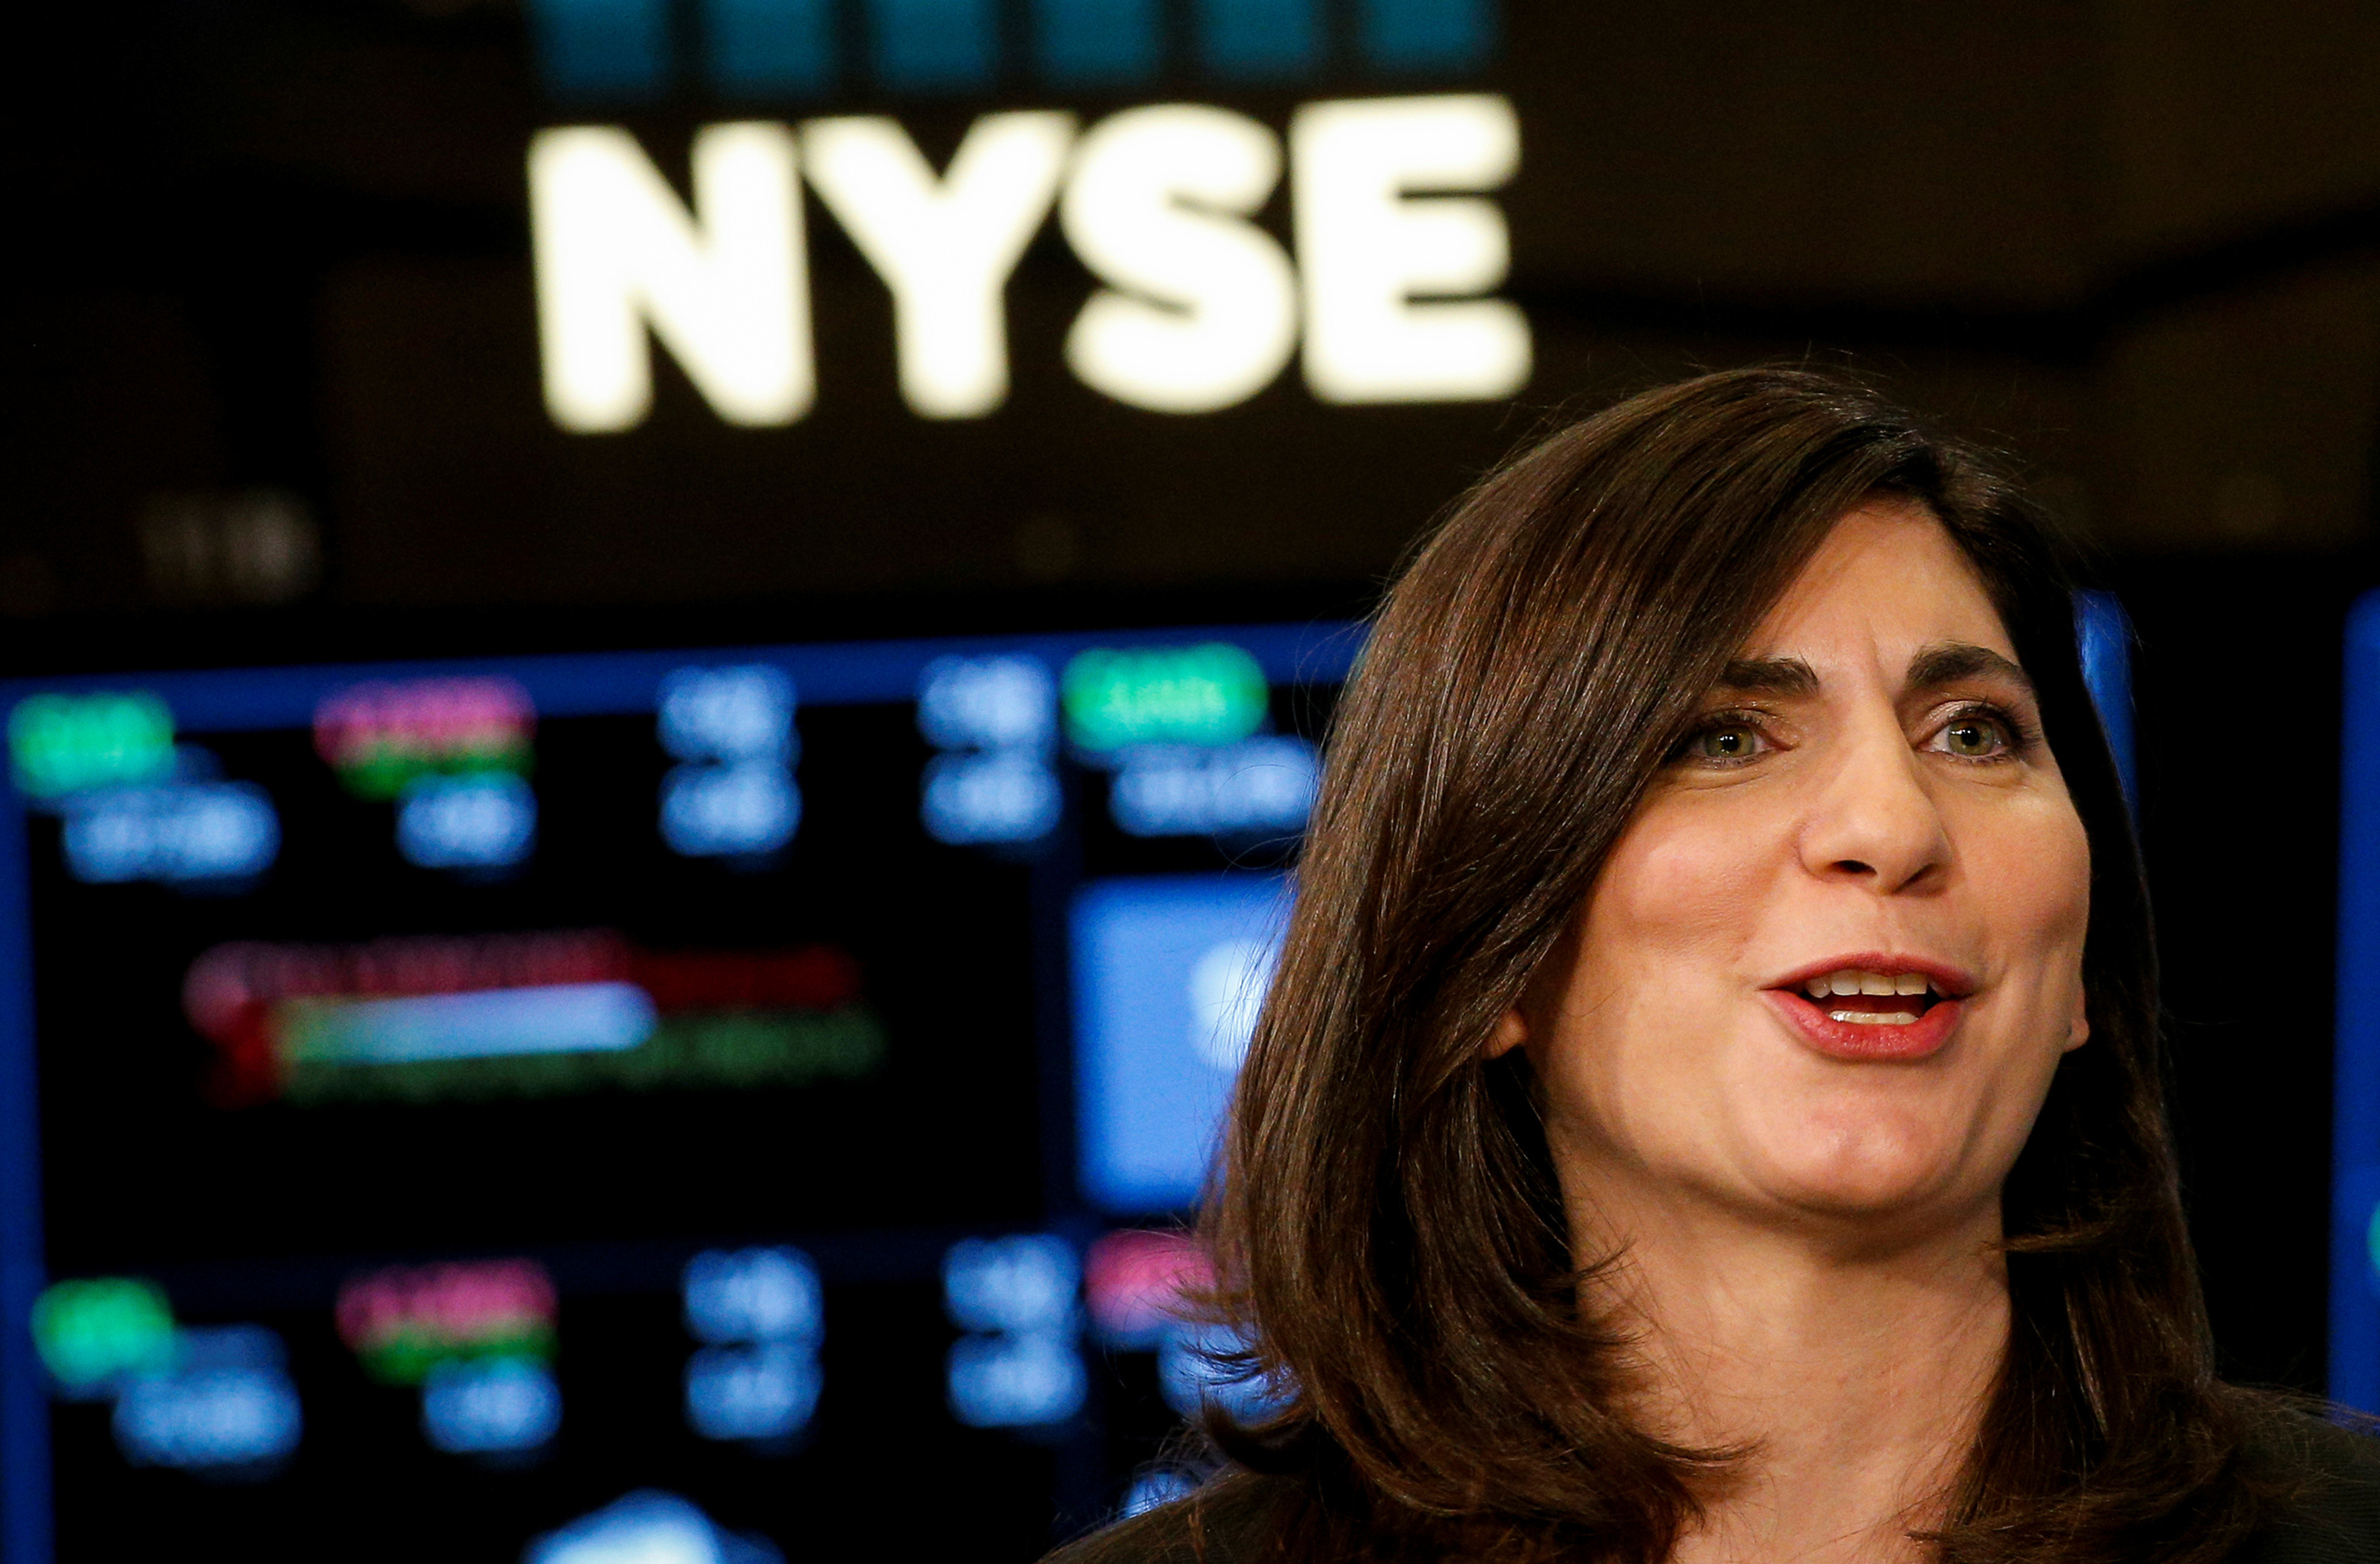 NYSE Chief Operating Officer Stacey Cunningham, who will be the New York Stock Exchange's (NYSE) first female president, speaks during an interview with CNBC on the floor of the NYSE in New York, U.S., May 22, 2018.